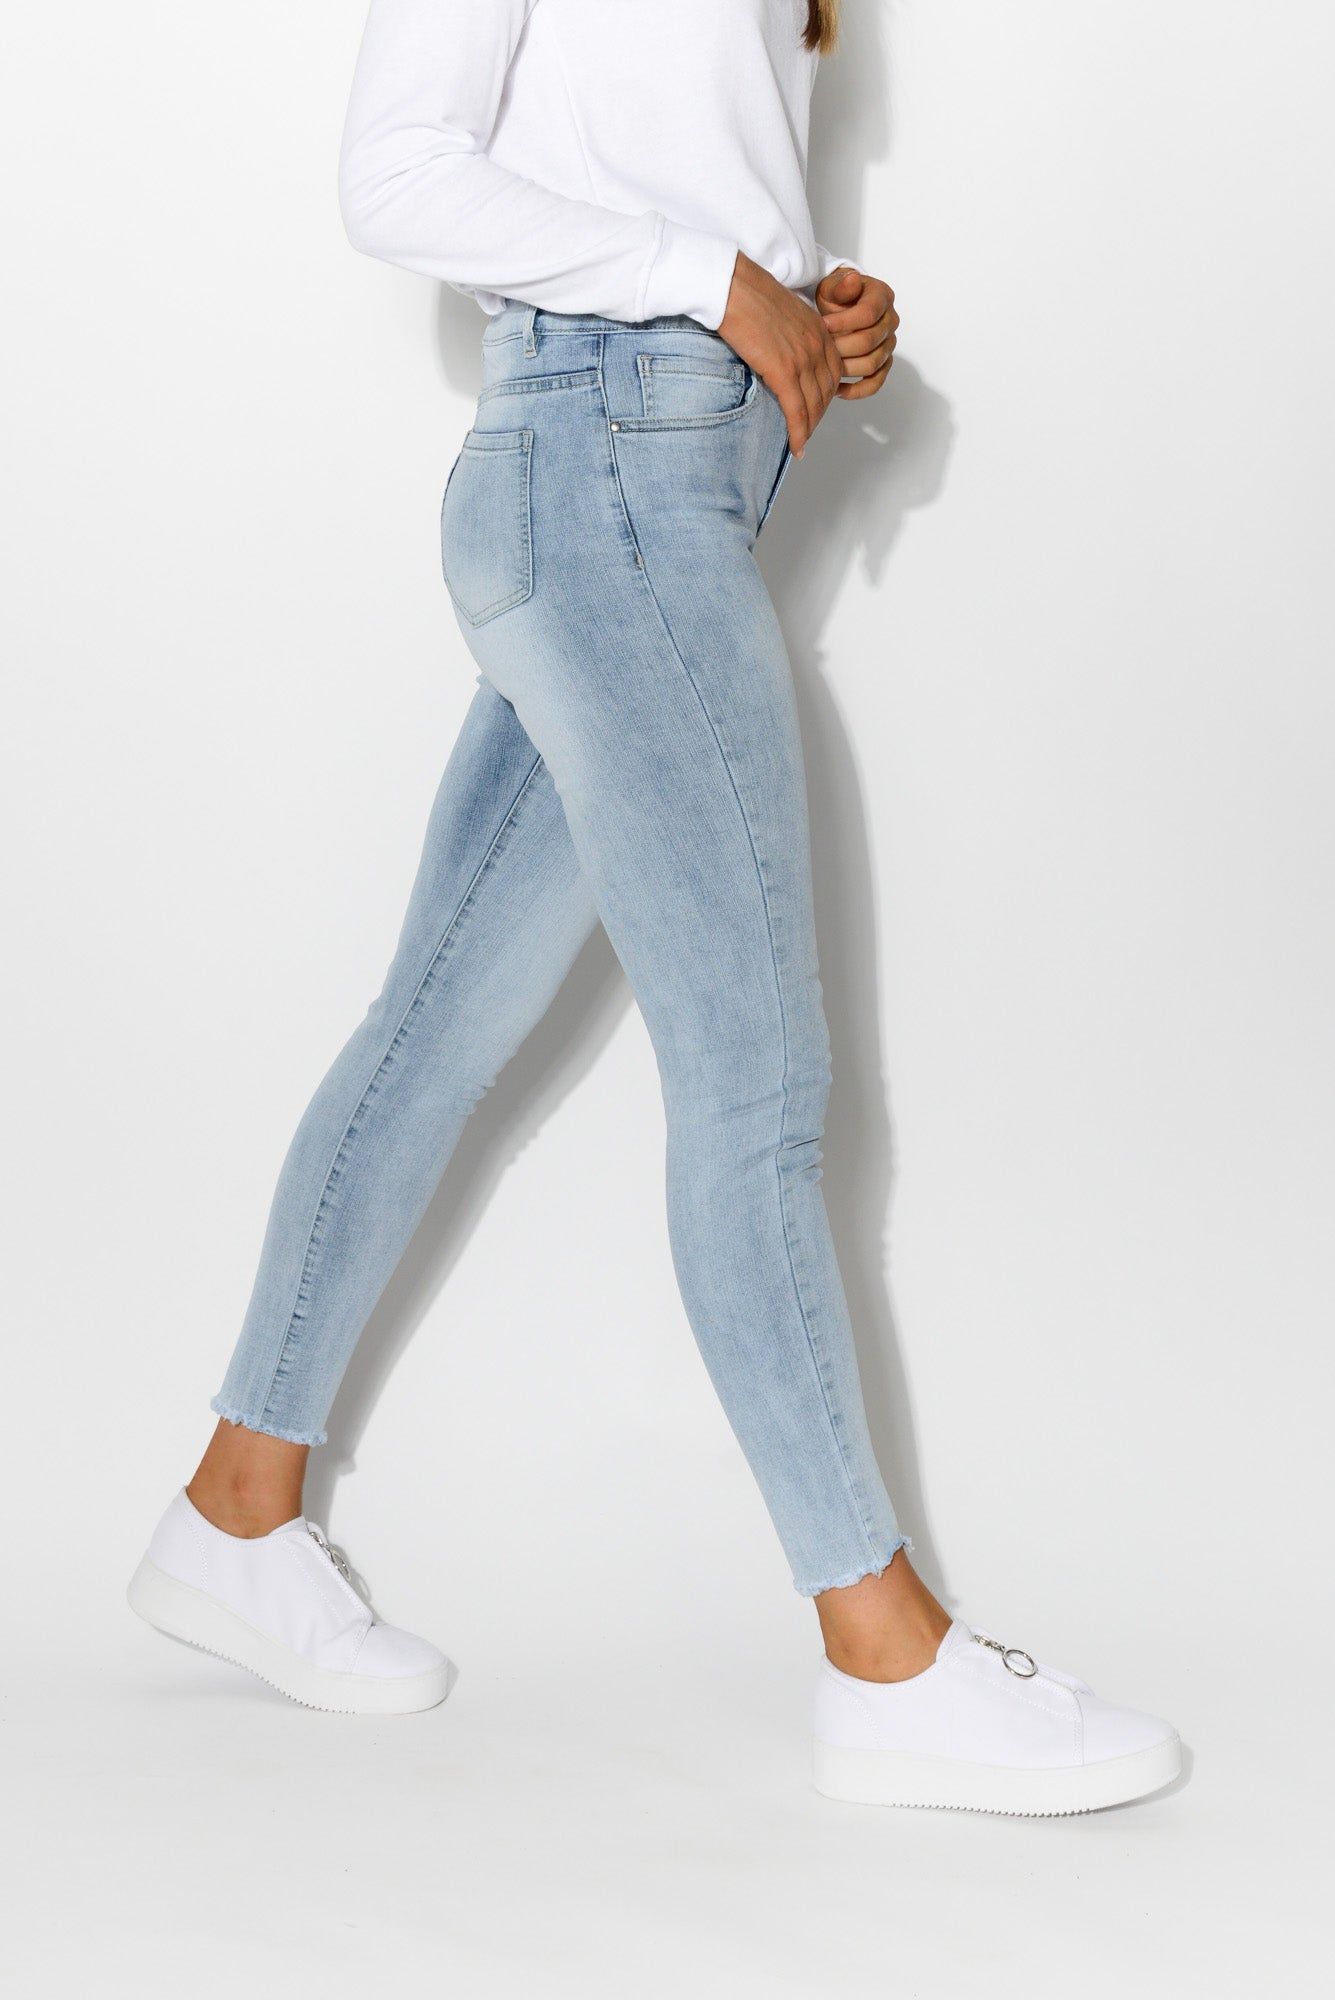 Bowie Light Denim Skinny Jean - Blue Bungalow